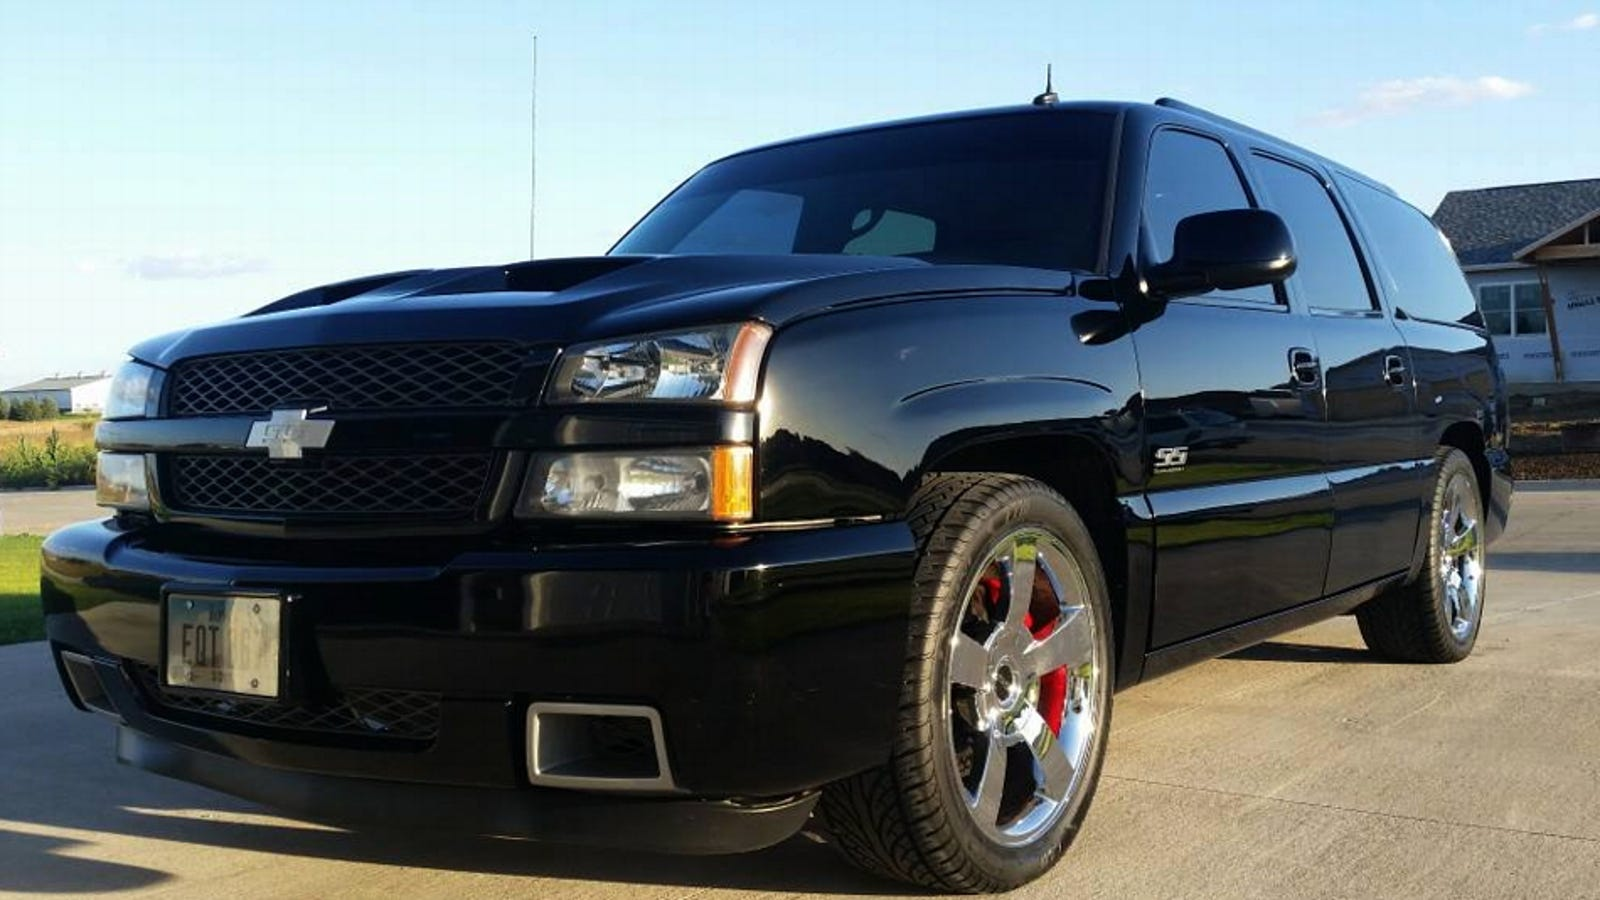 For $18,995, Would You Say This Custom 2003 Chevy Suburban ...